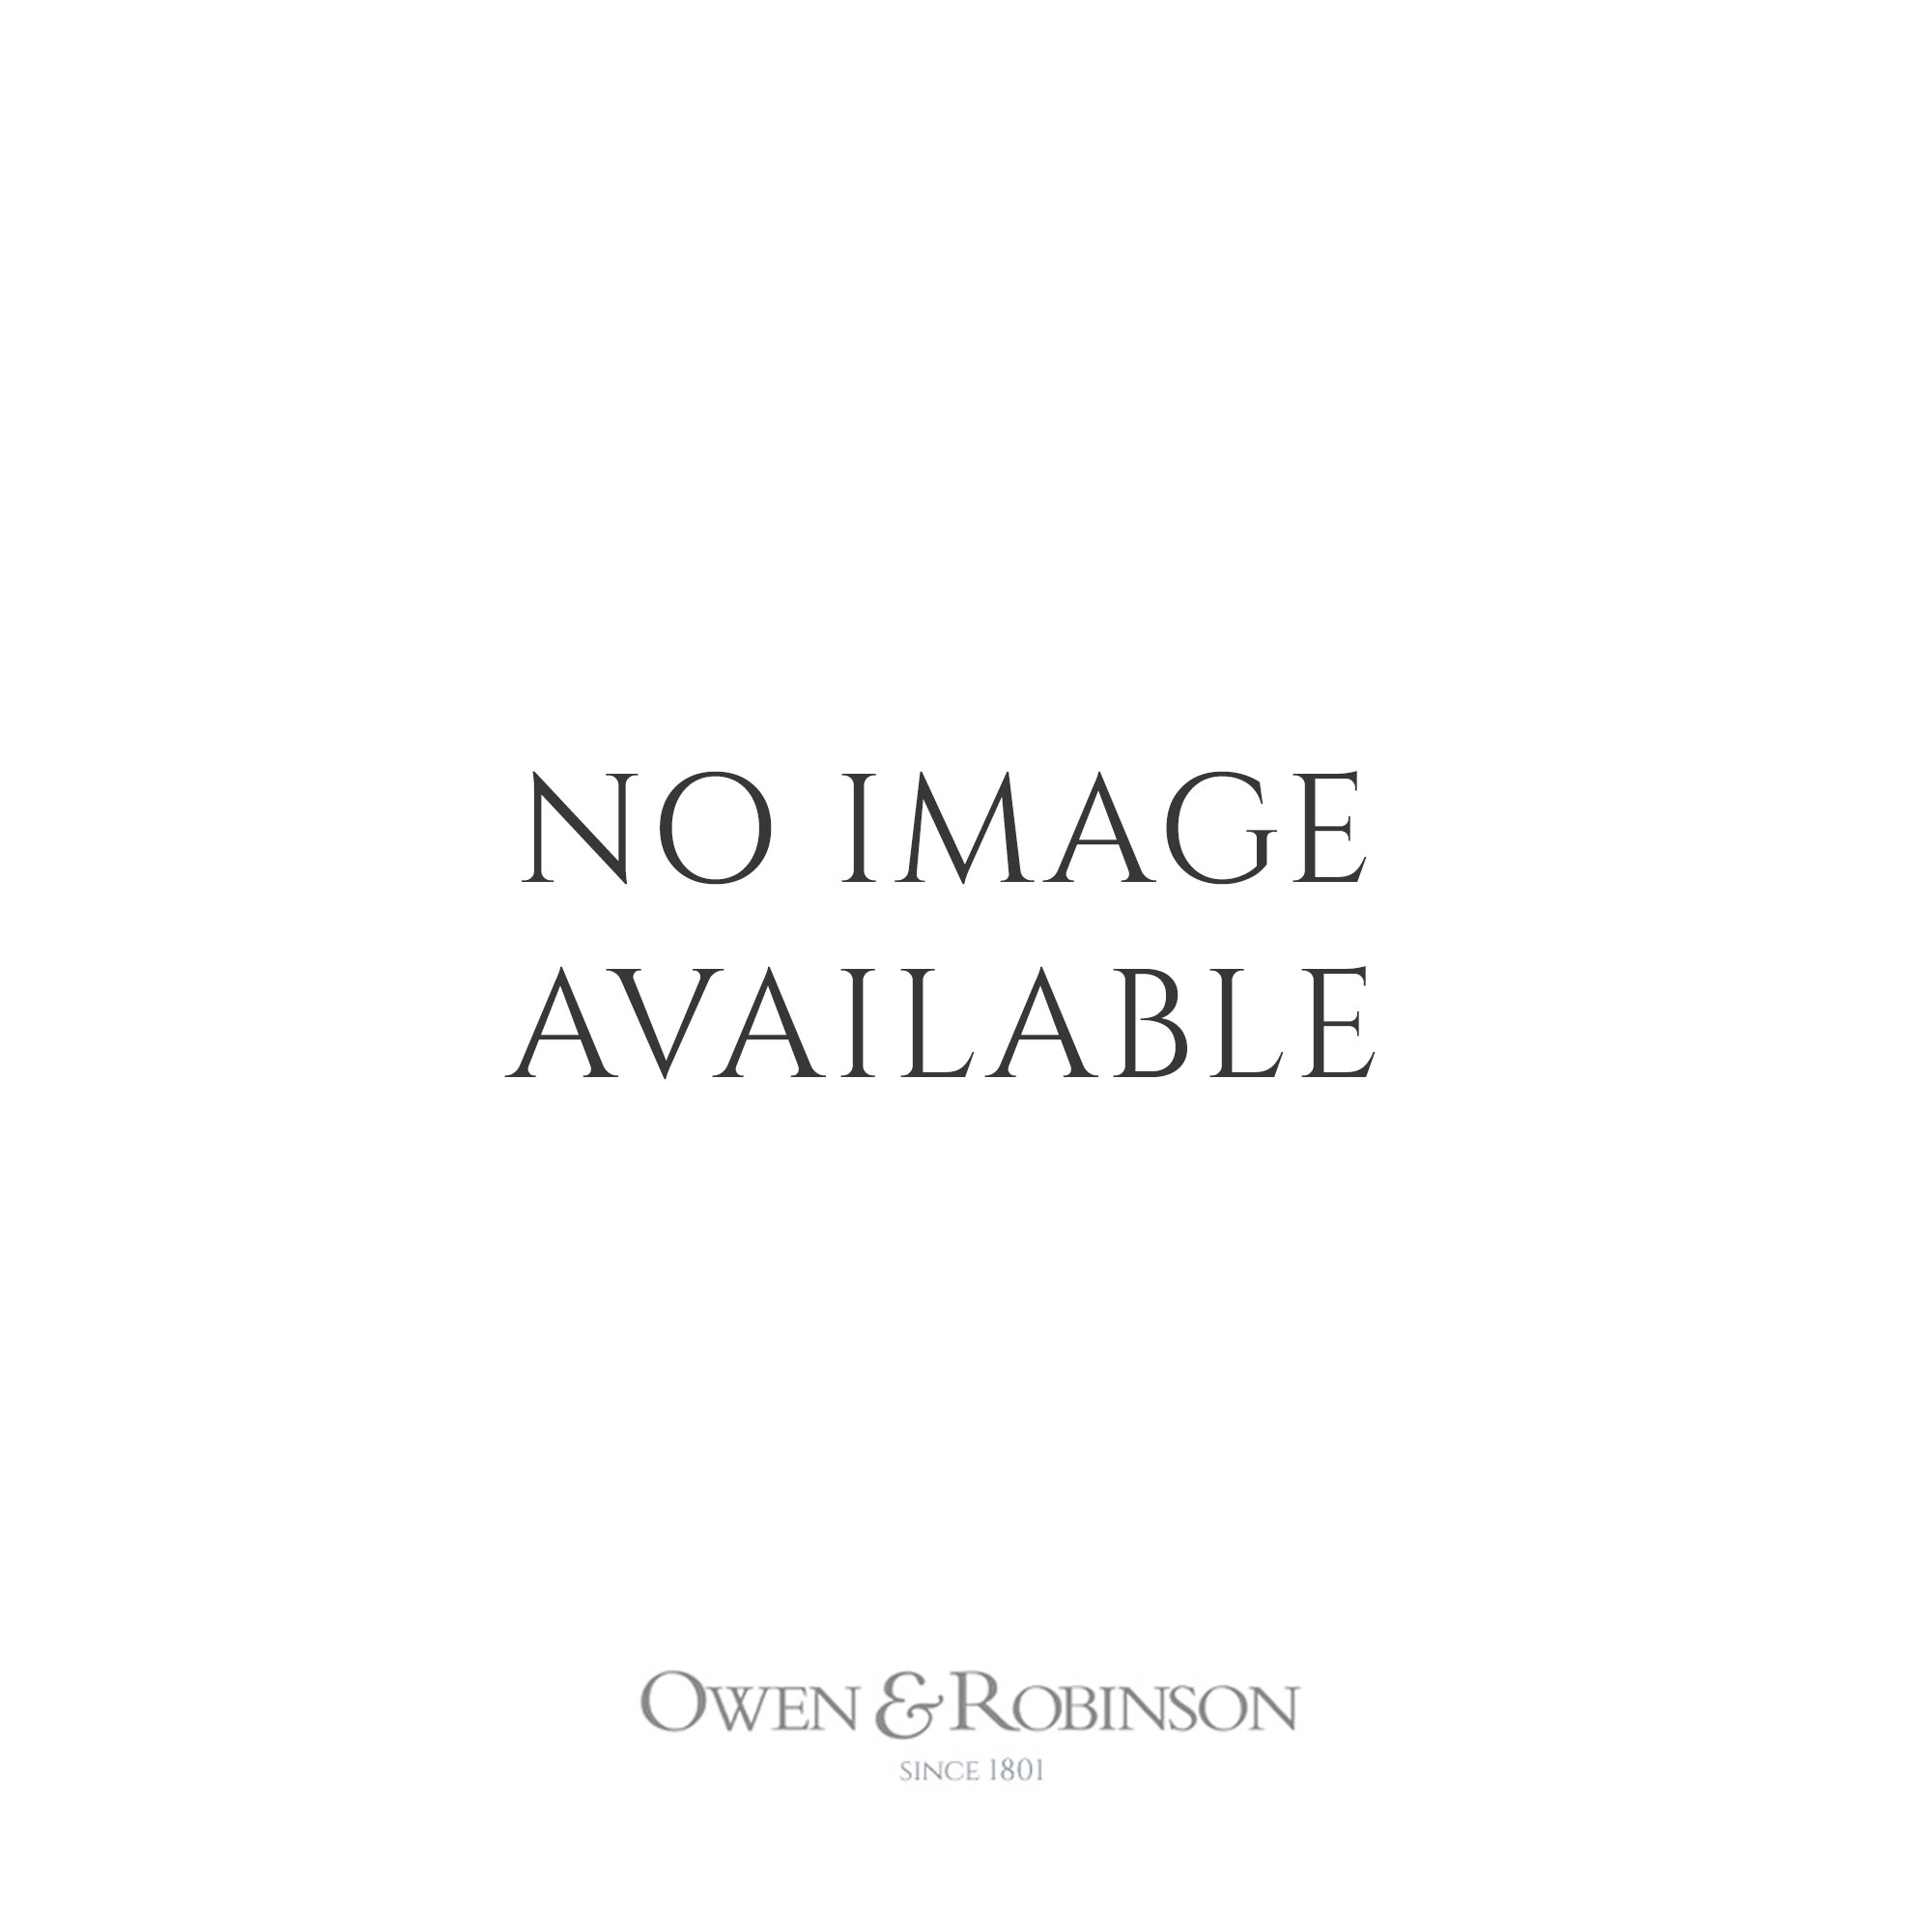 Clifton Club 'Indian Motorcycles Burt Munro Limited Edition 1967' Automatic Chronograph Silver Dial Strap Watch